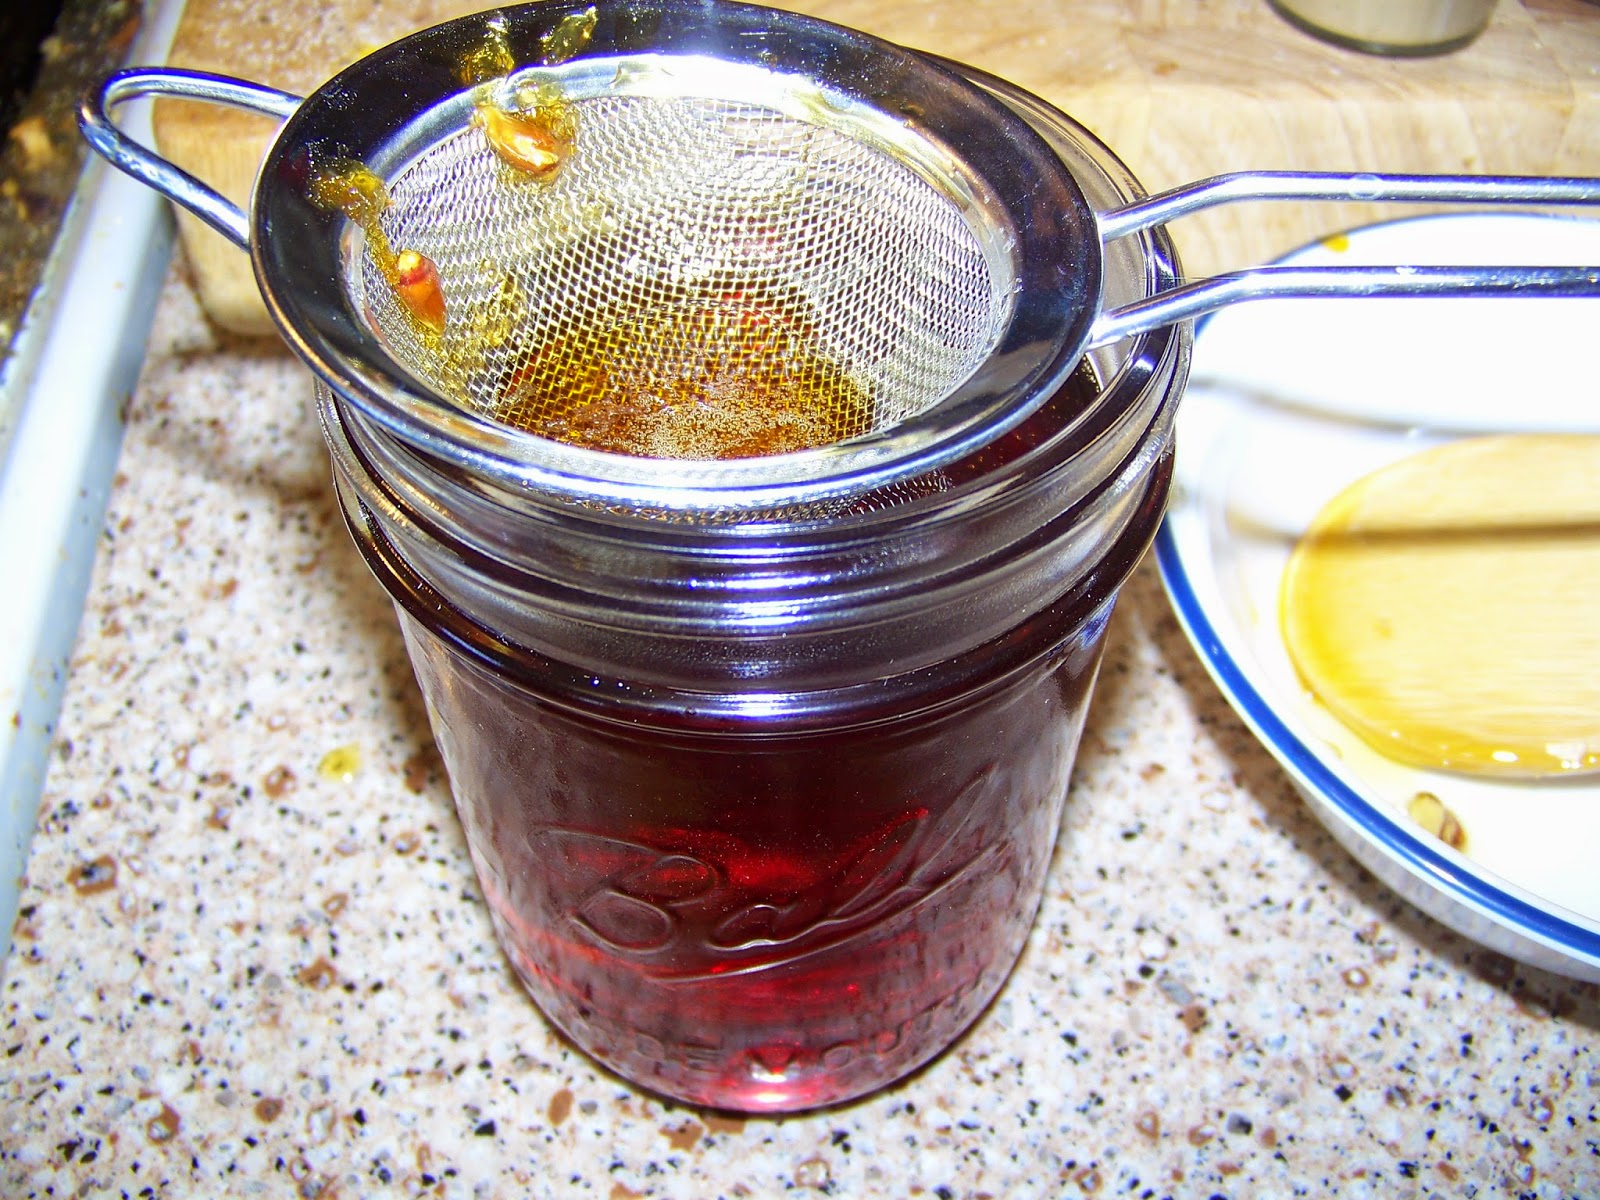 Kitchen Simmer: Tuesday Tips: How to Make Golden Syrup at Home